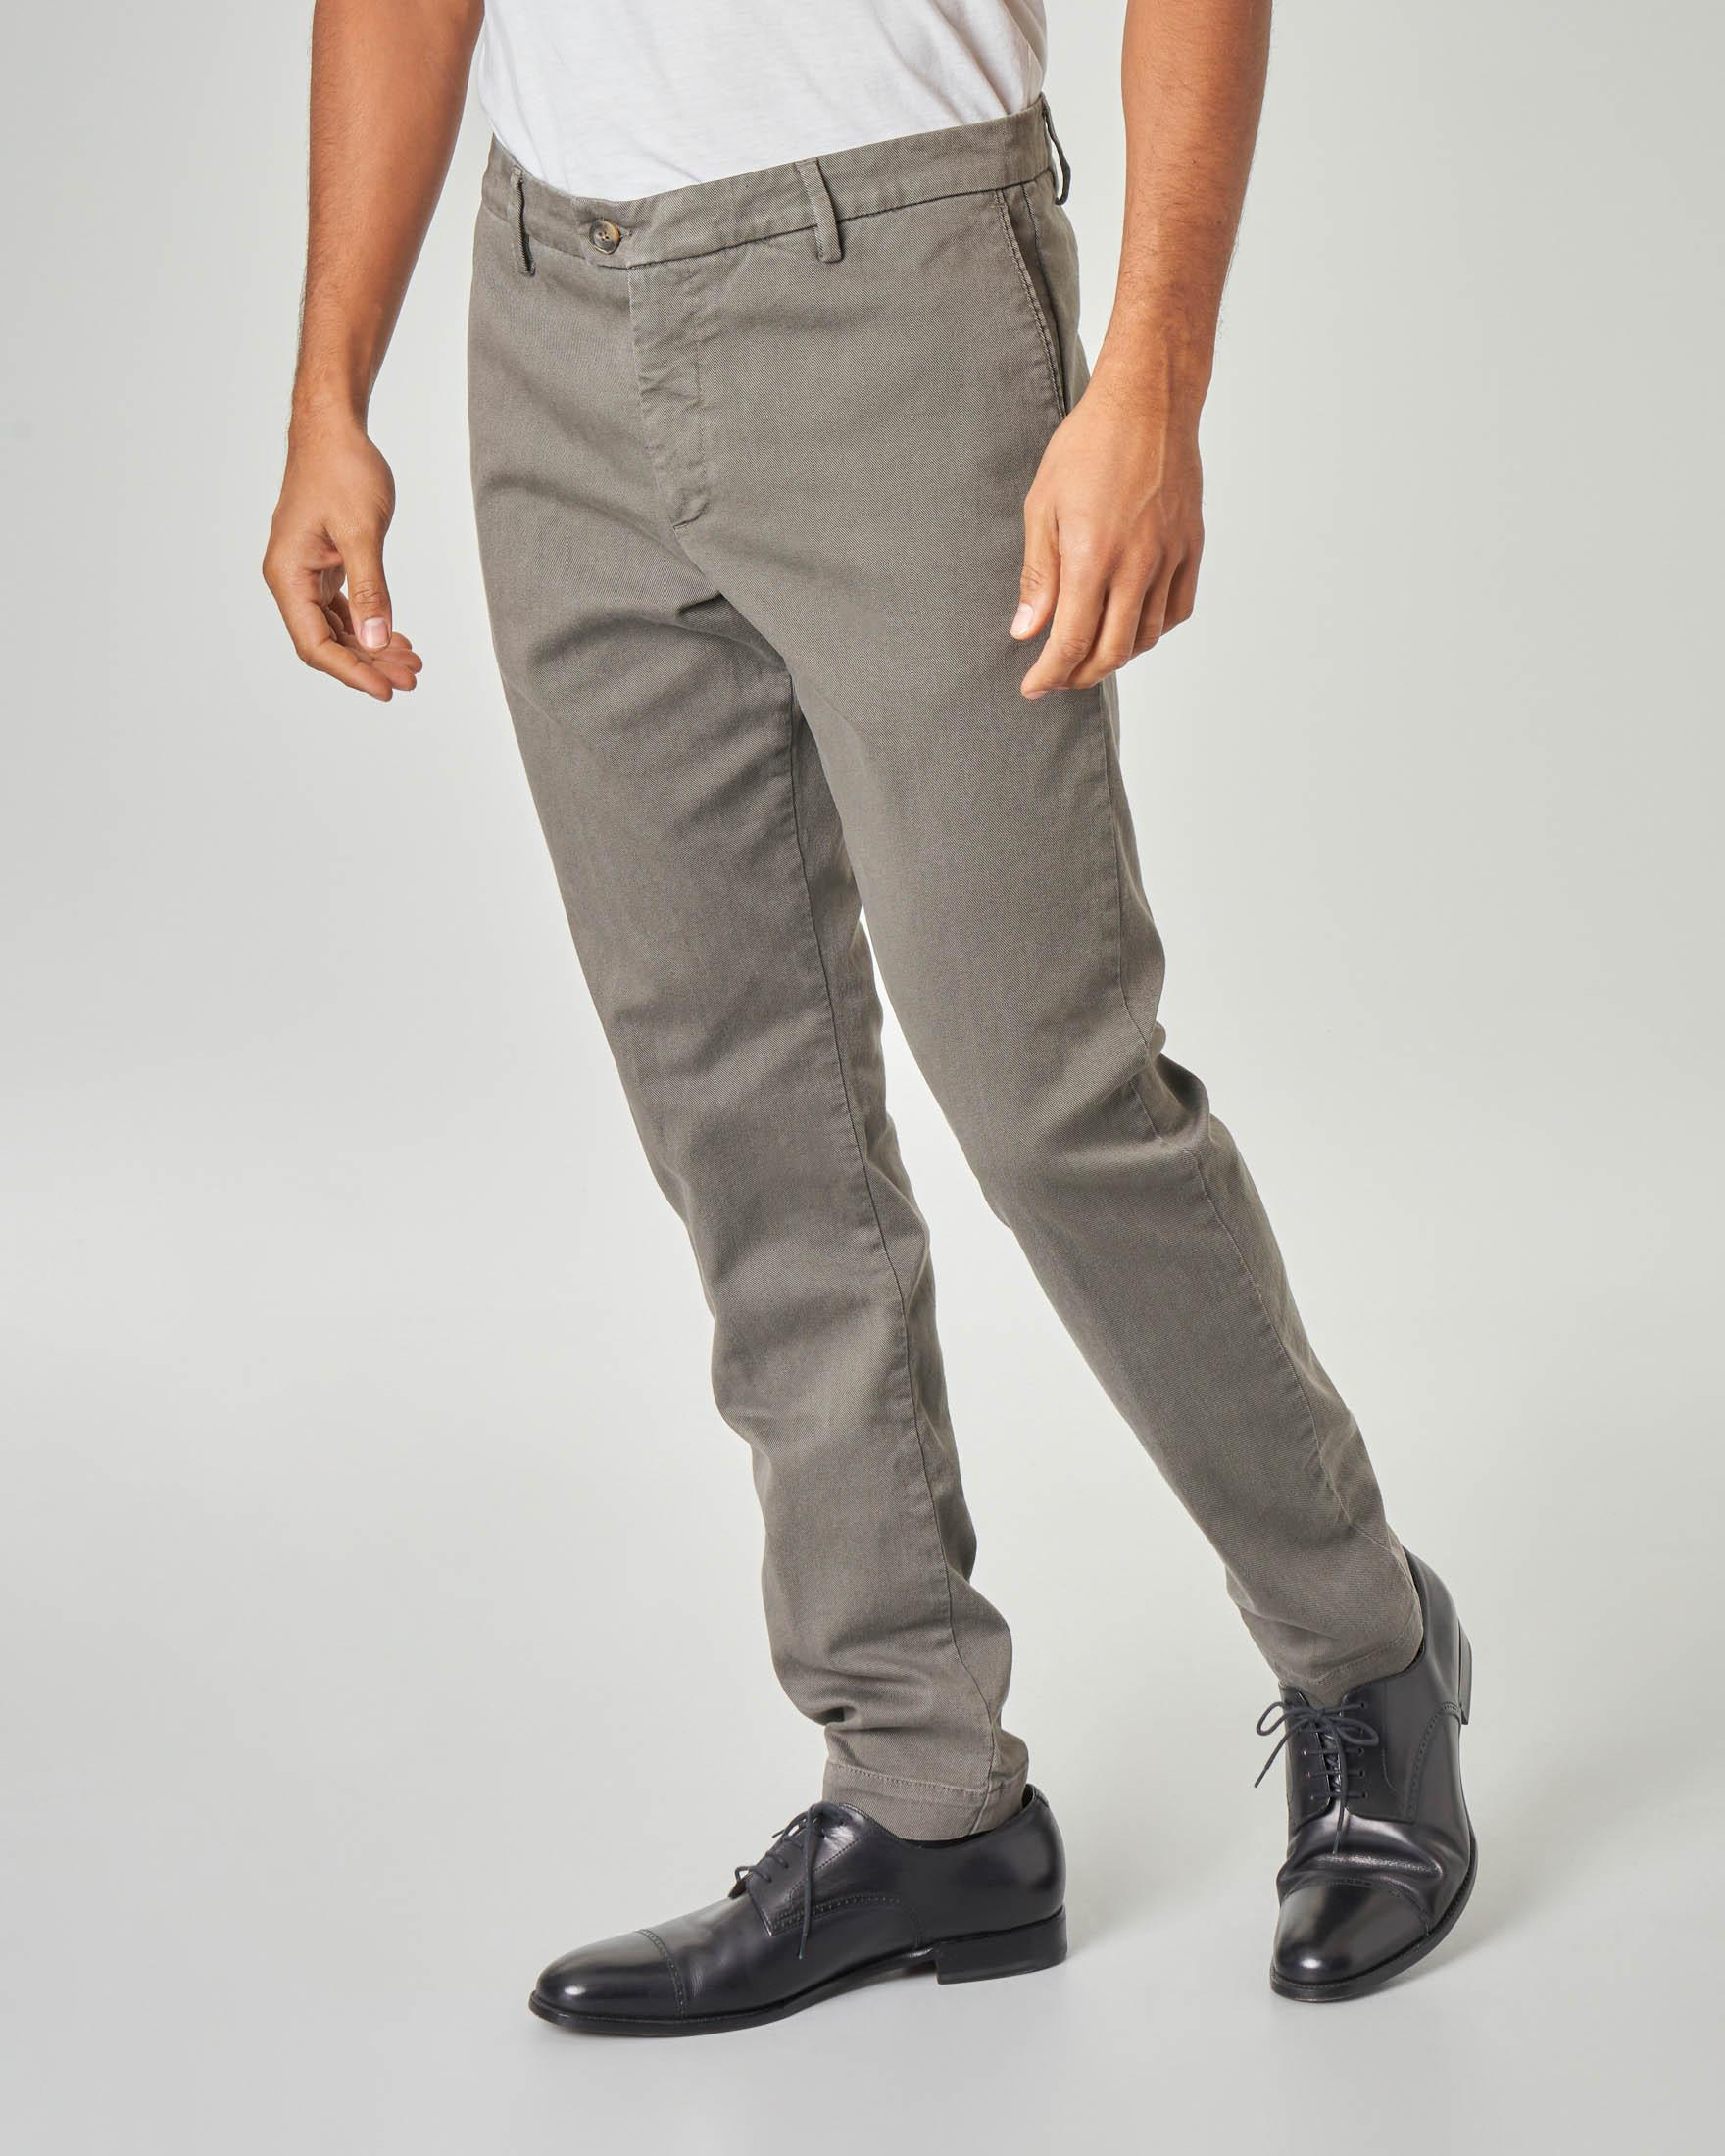 Pantalone chino color tortora in drill di cotone